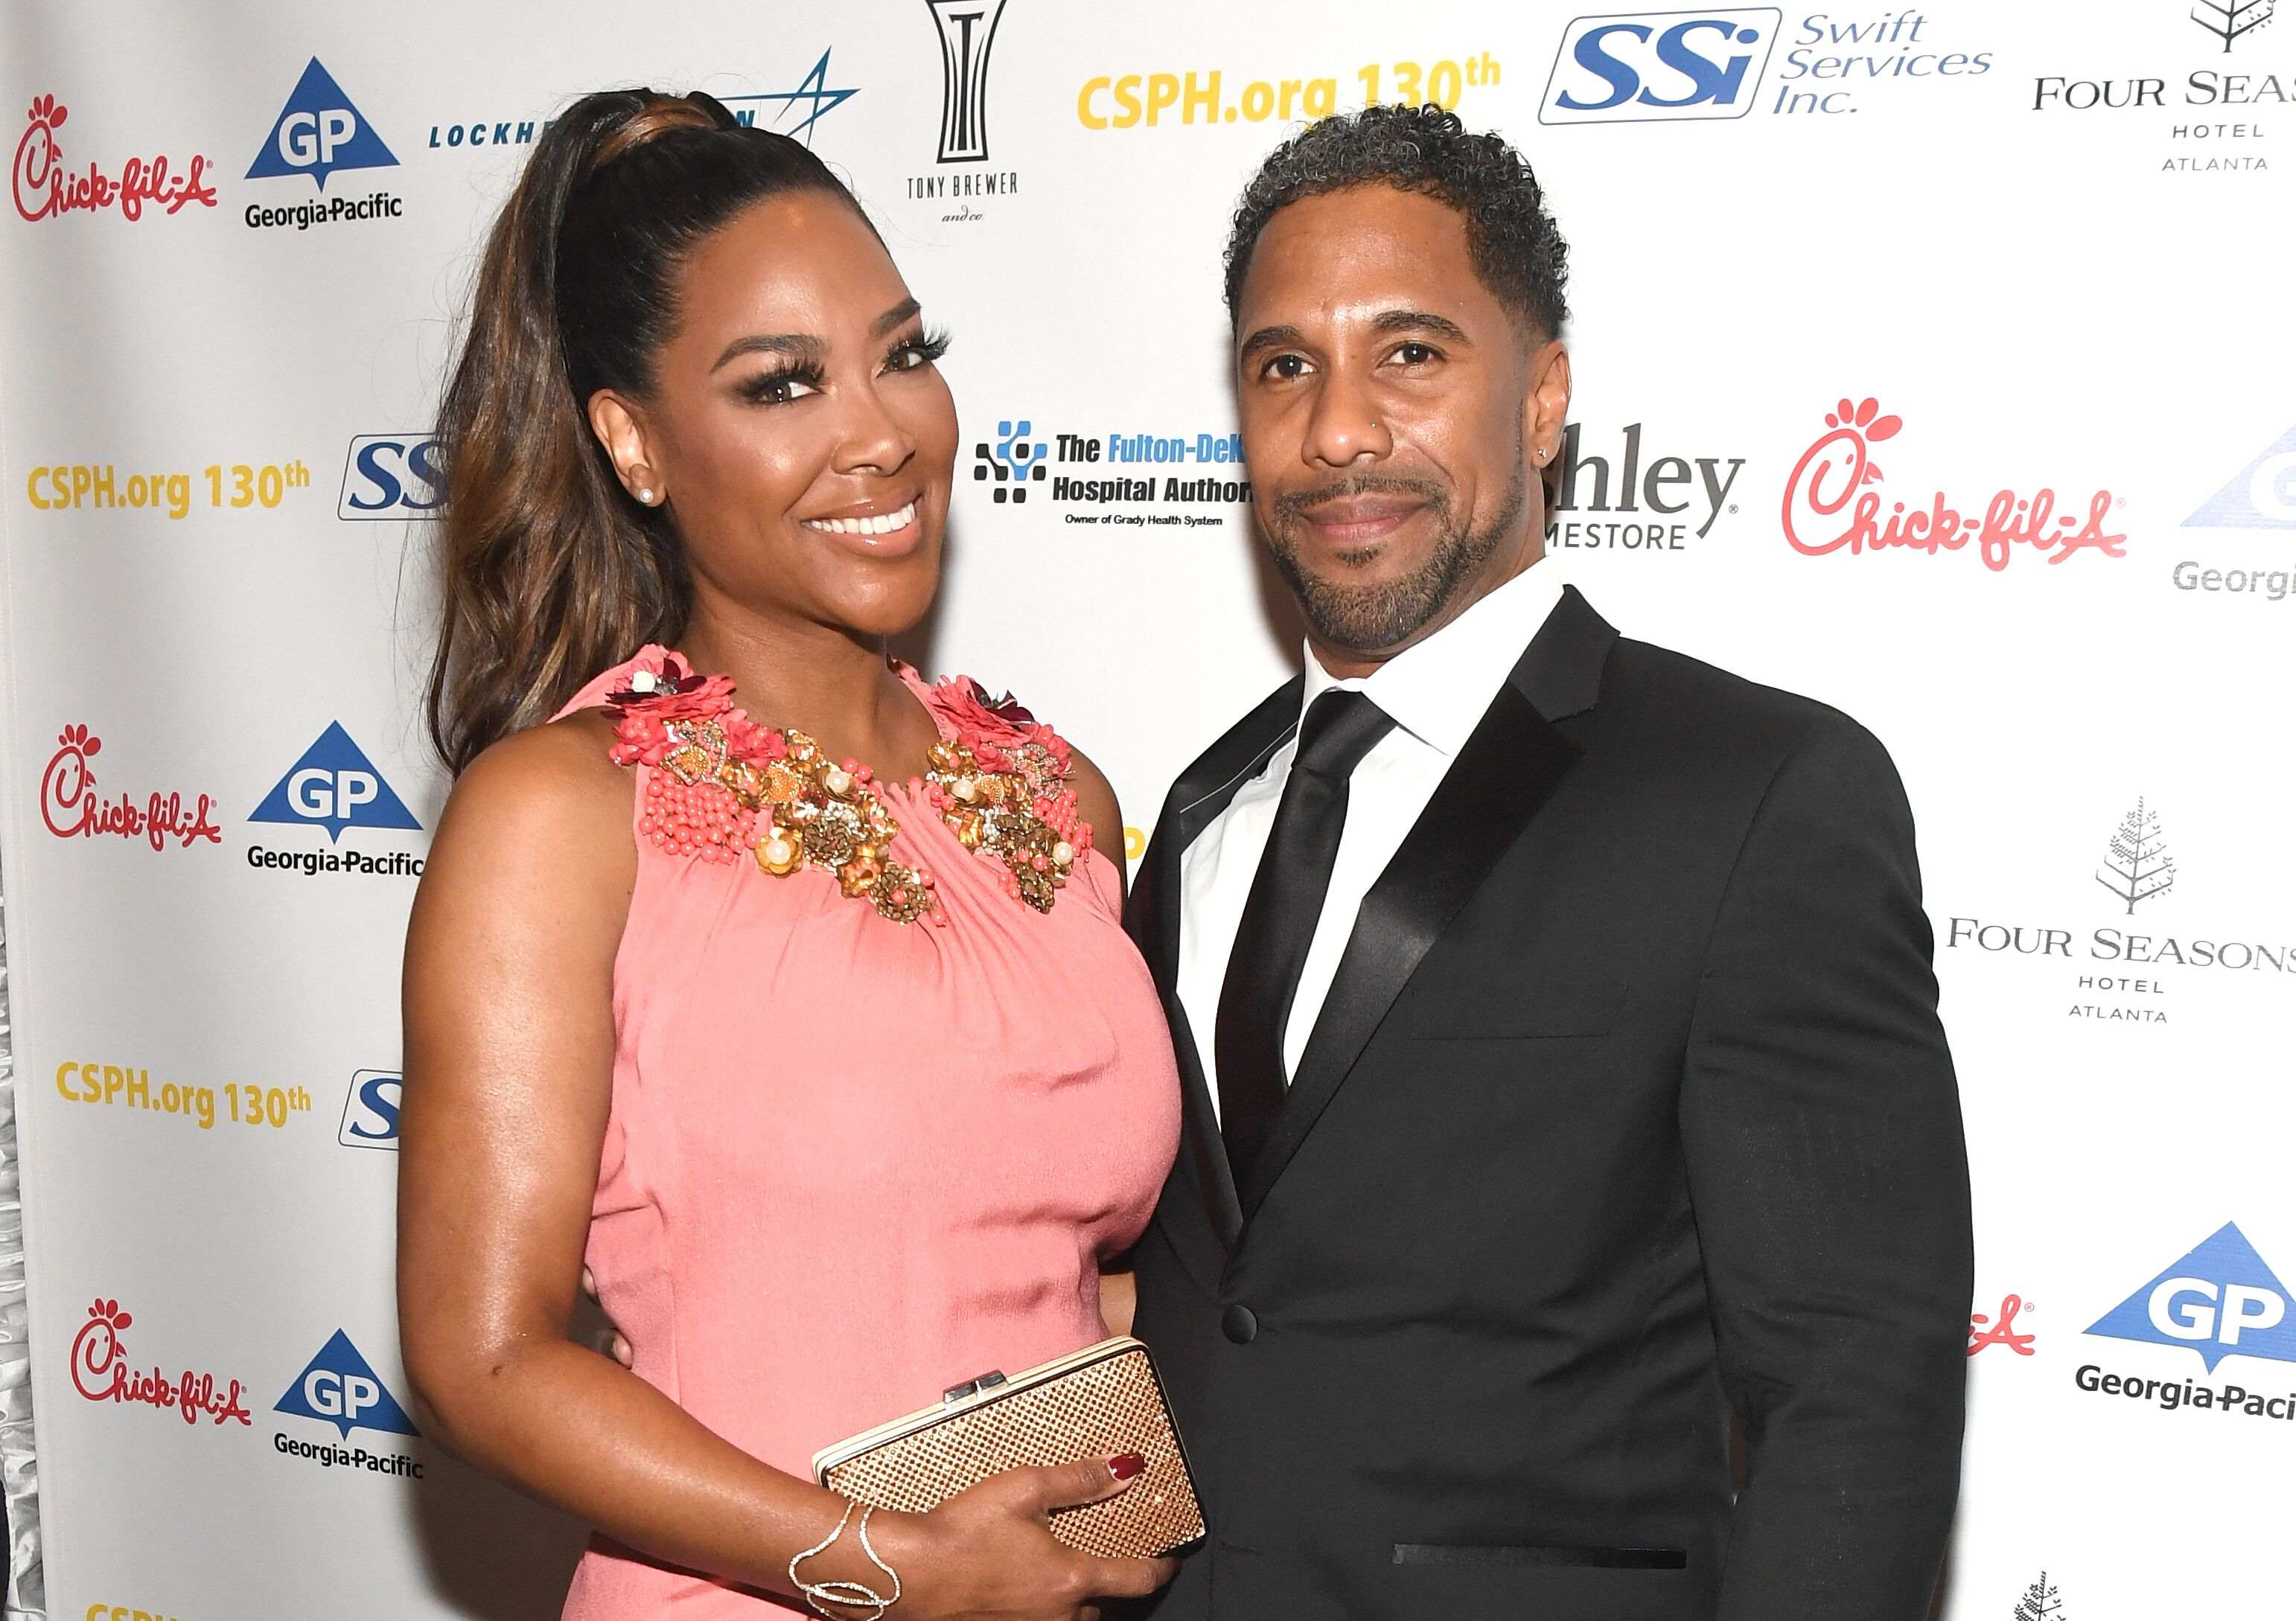 Kenya Moore and Marc Daly attending an event together | Source: Getty Images/GlobalImagesUkraine